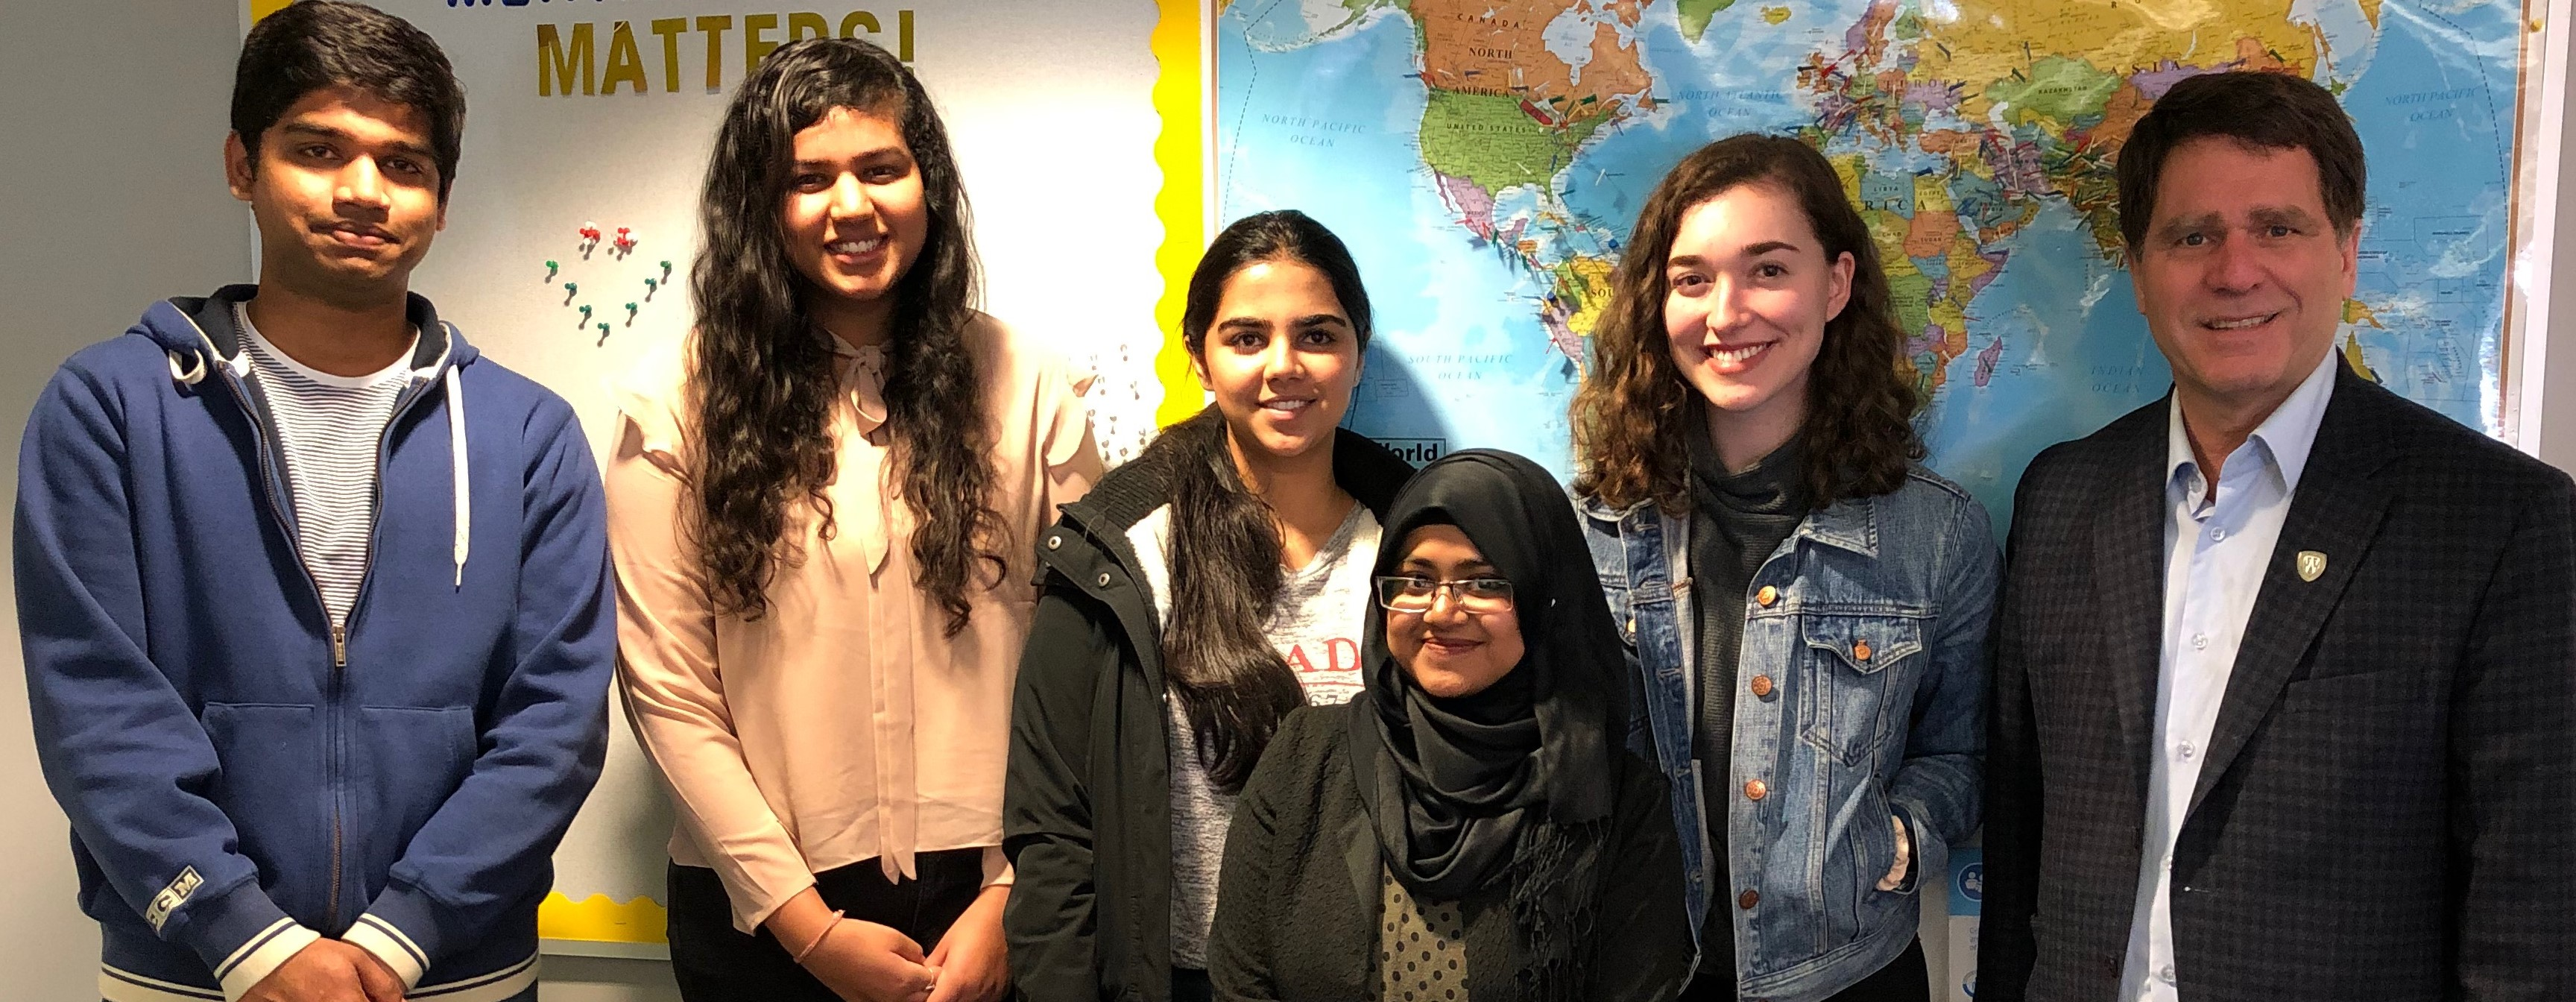 Dr. Smith with members of the International Student Learning Community, March 2019